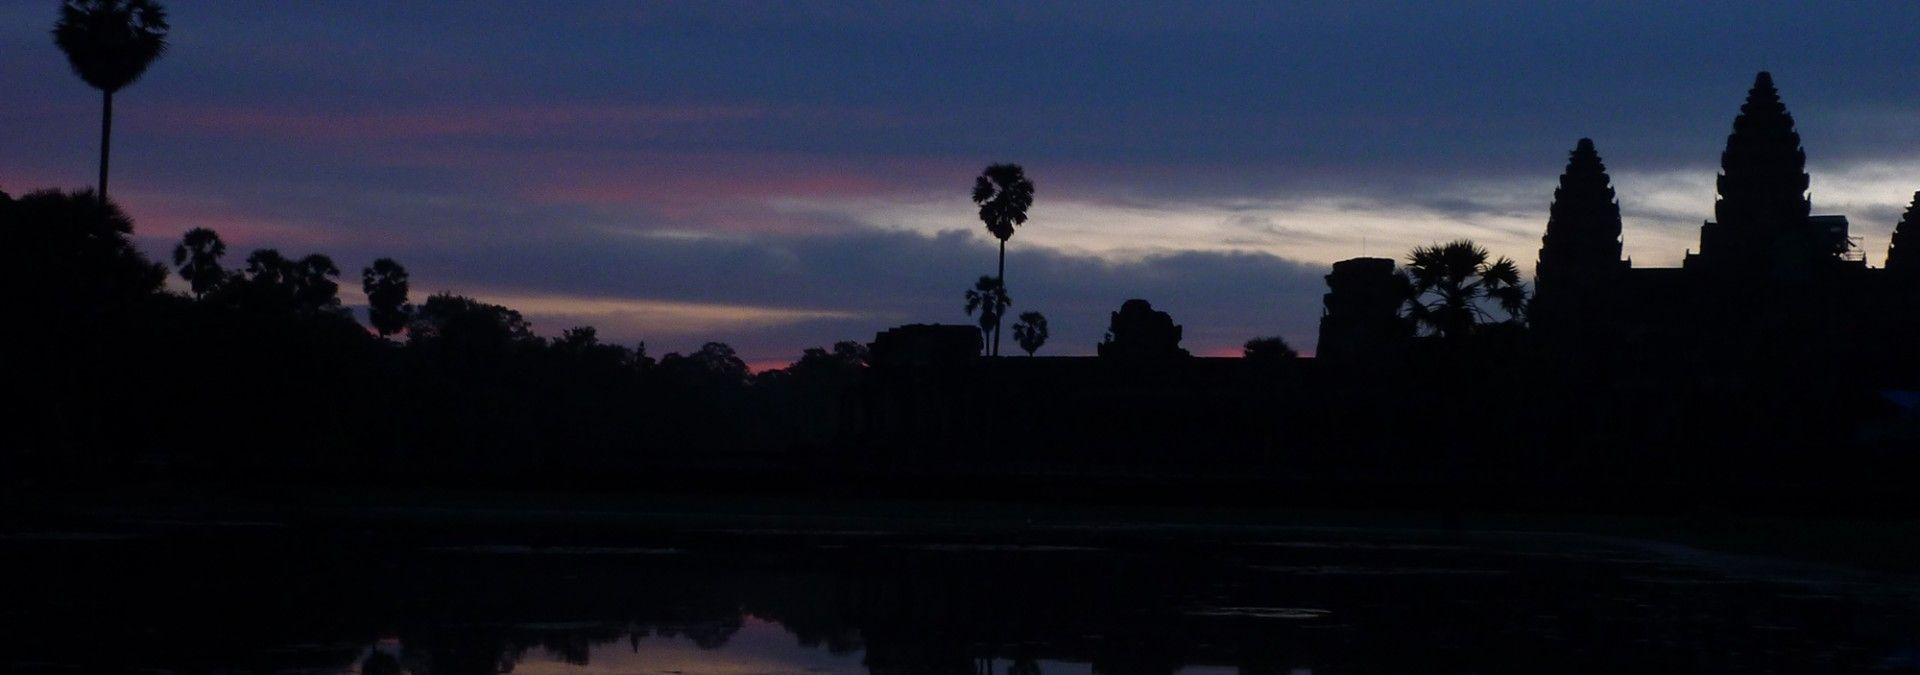 Angkor_Wat_view_at_sunset.jpg